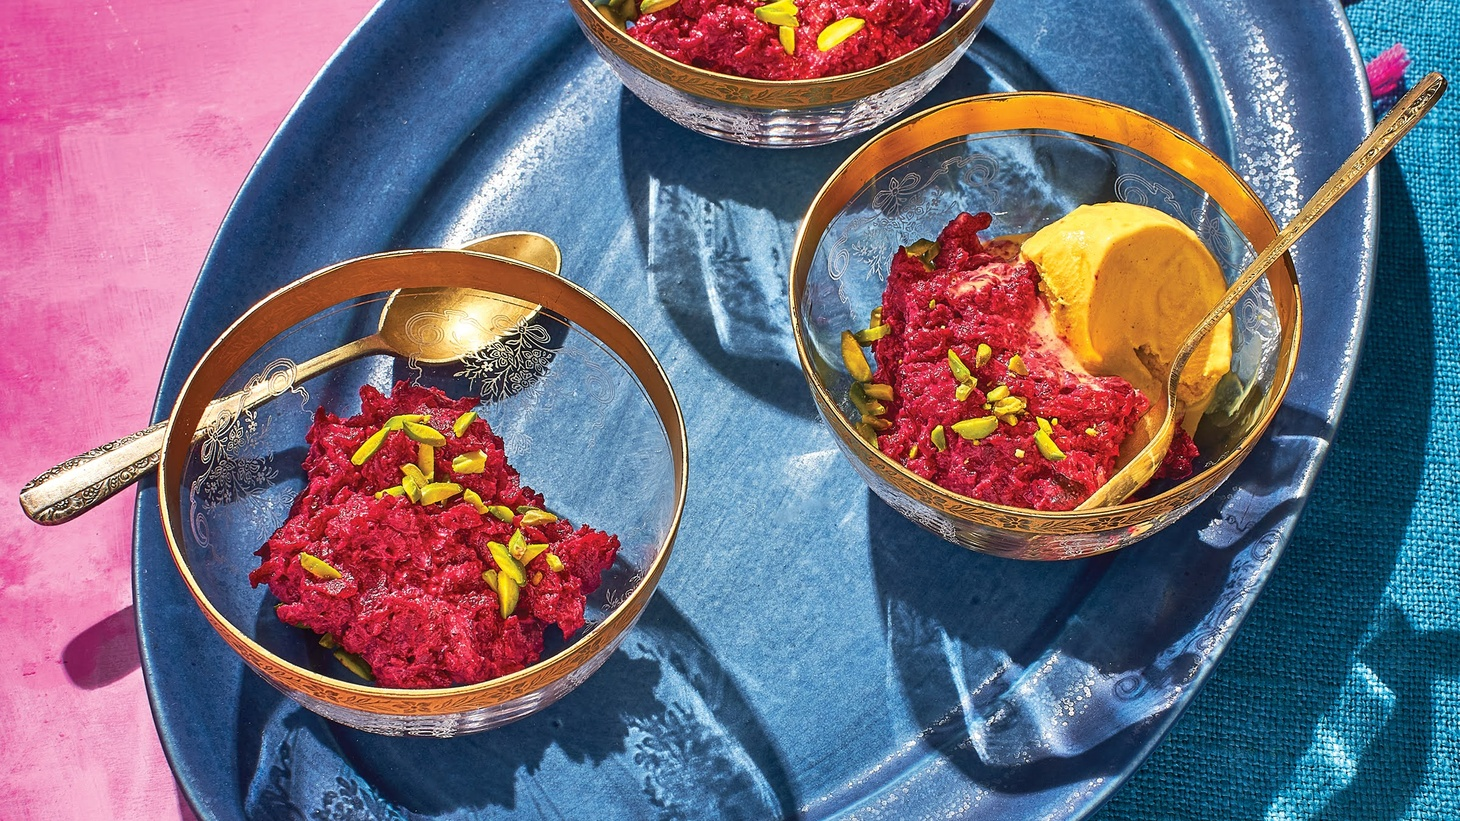 Chef Preeti Mistry created a no-bake halwa of cooked beets grated down in milk with pistachios for a sweet course for Holi.